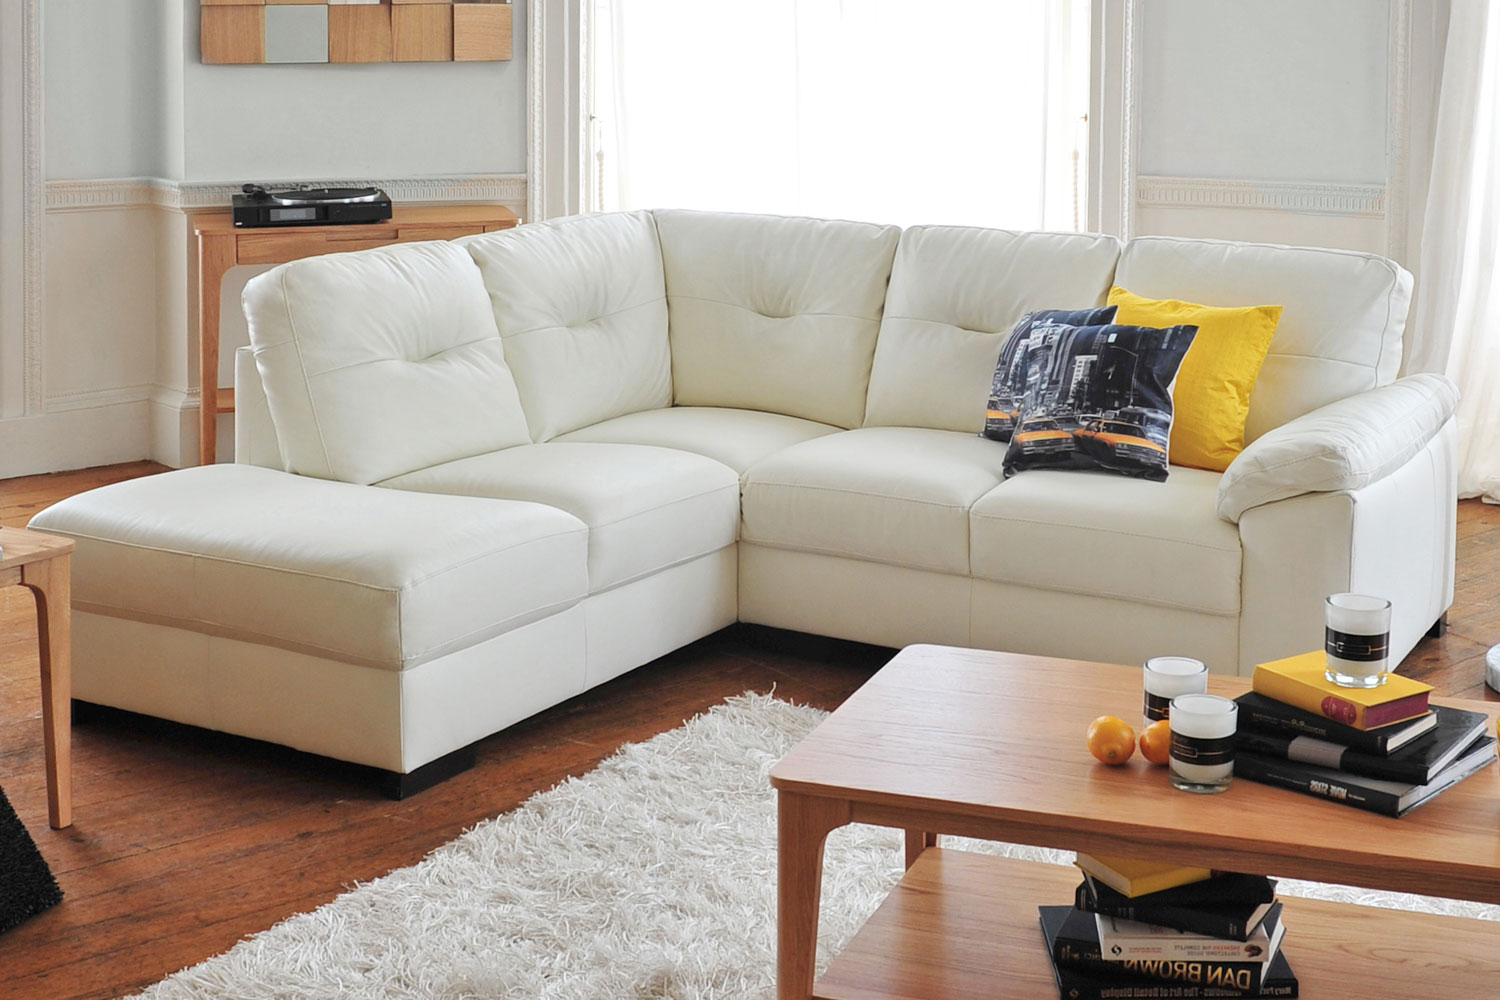 Sofa Set Price New Best Price Sofas Sectional Sofa Elegant Best Price On